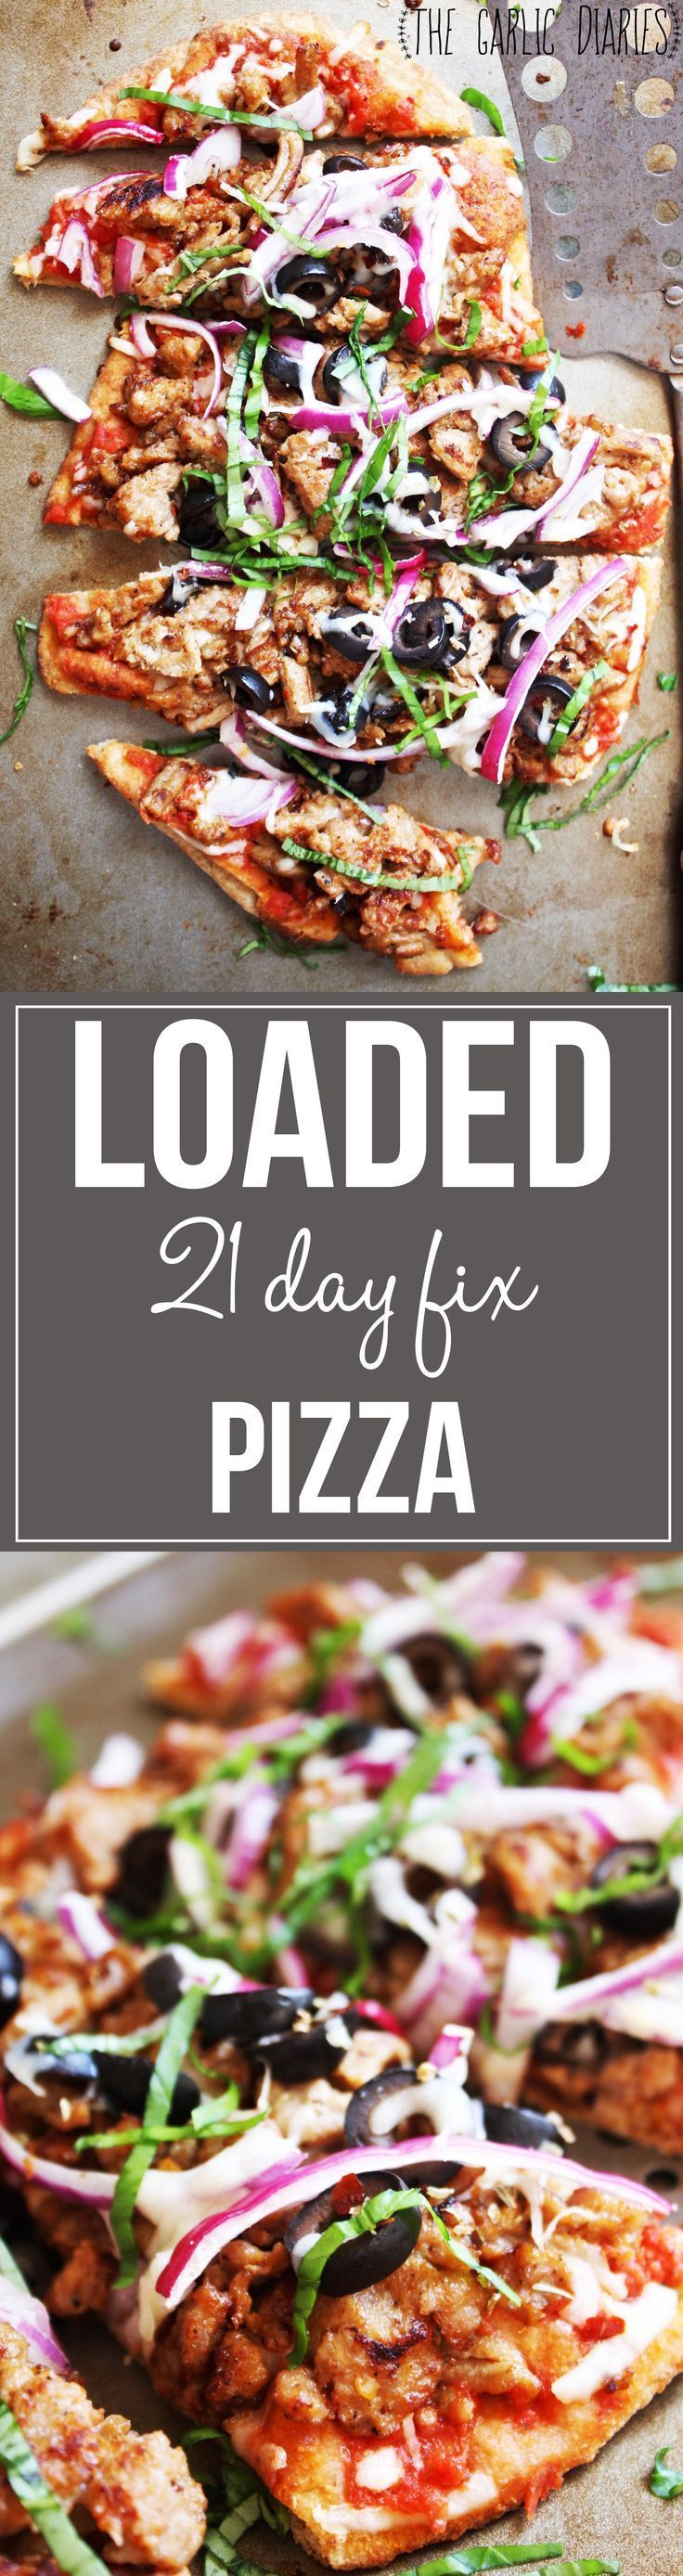 1000 Ideas About Junk Food List On Pinterest Food Facts